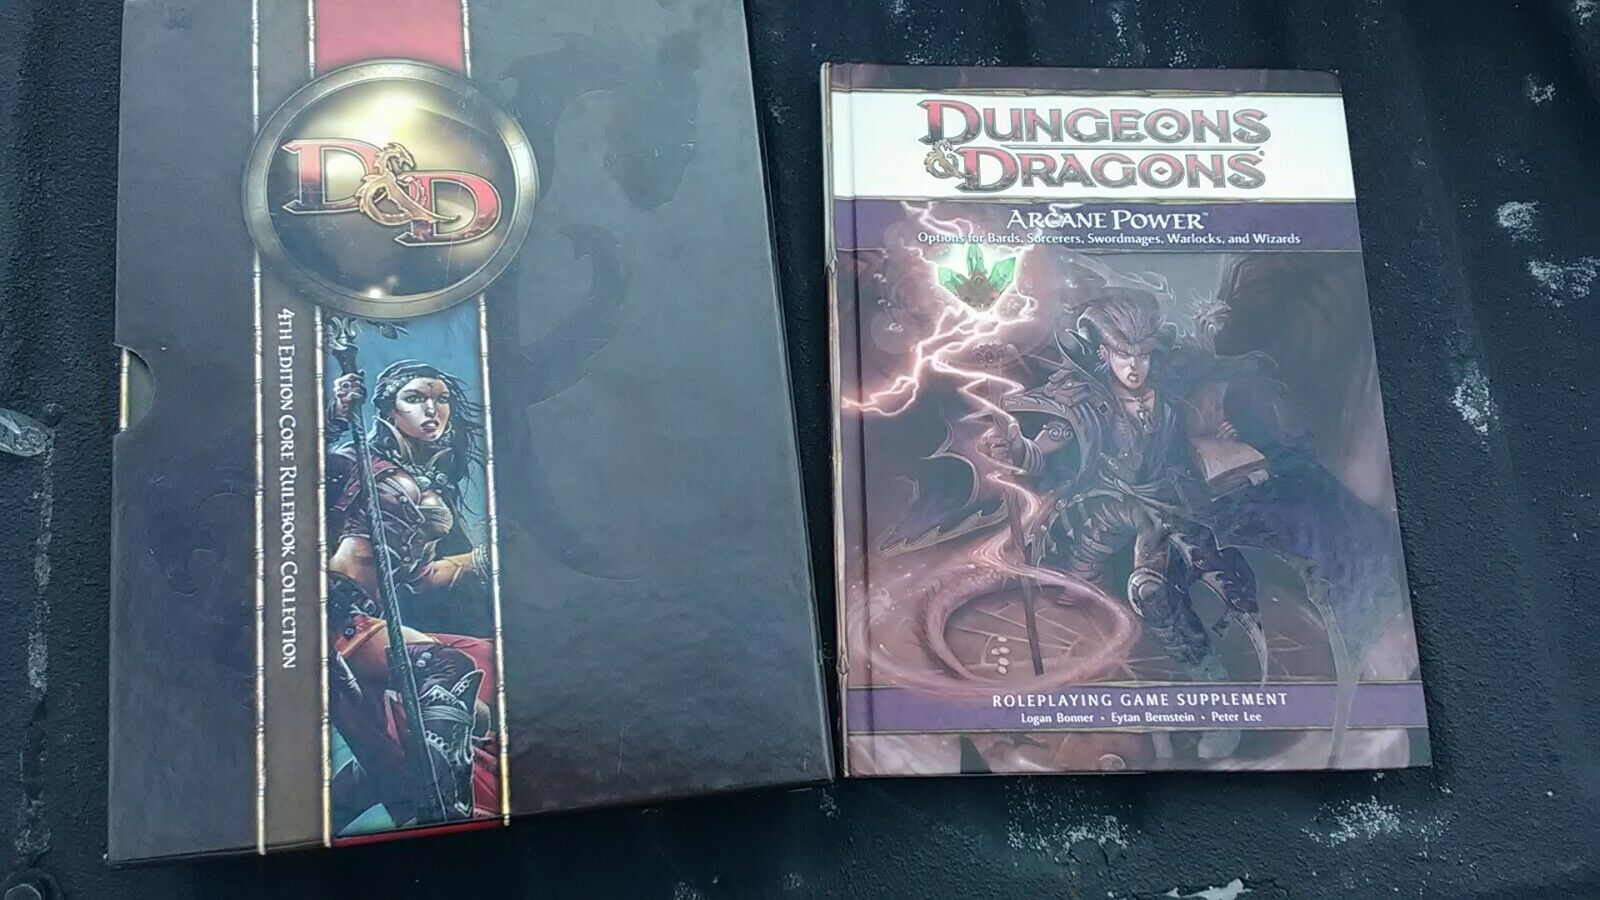 Dungeons & Dragons 4th Edition Core Set & Arcane Powers slipcase Excellent